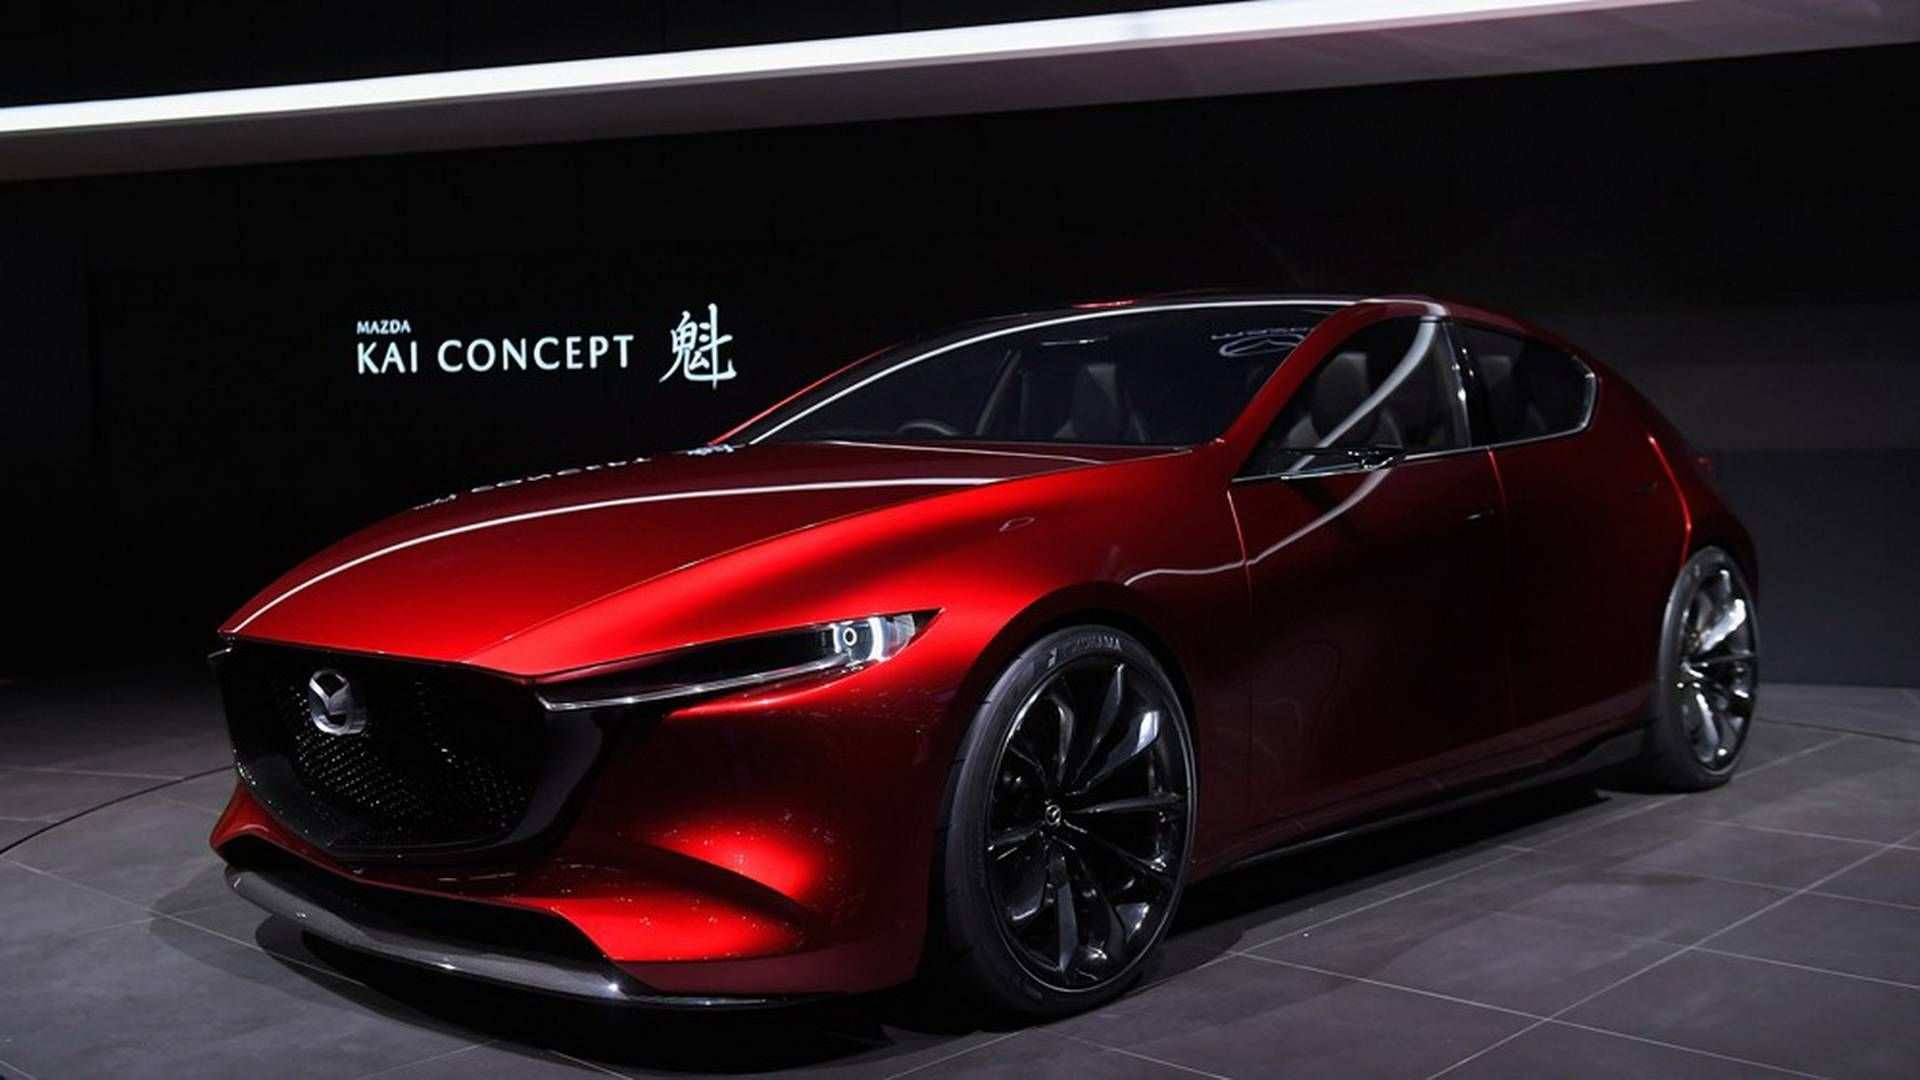 47 New Mazda 2019 Concept Review